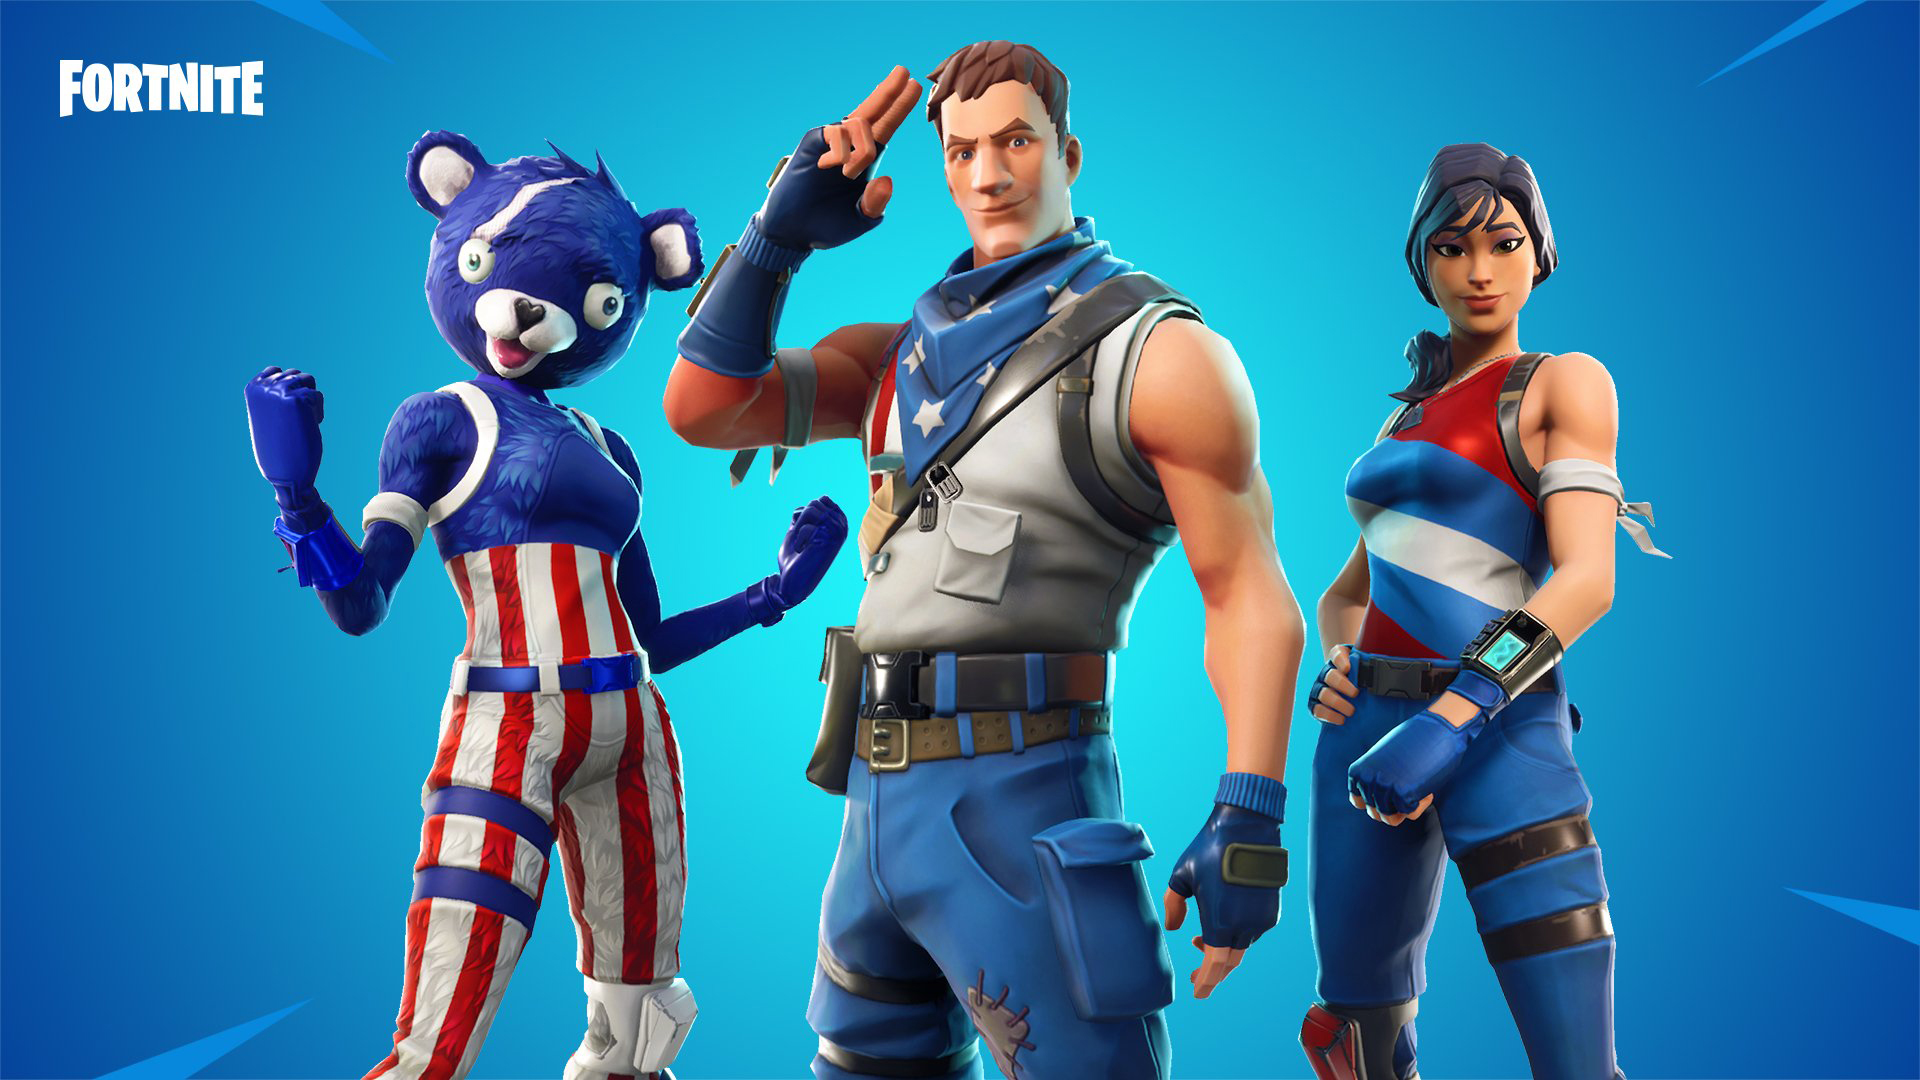 Top 15 Best Fortnite Wallpapers That Need to be Your New Background 1920x1080